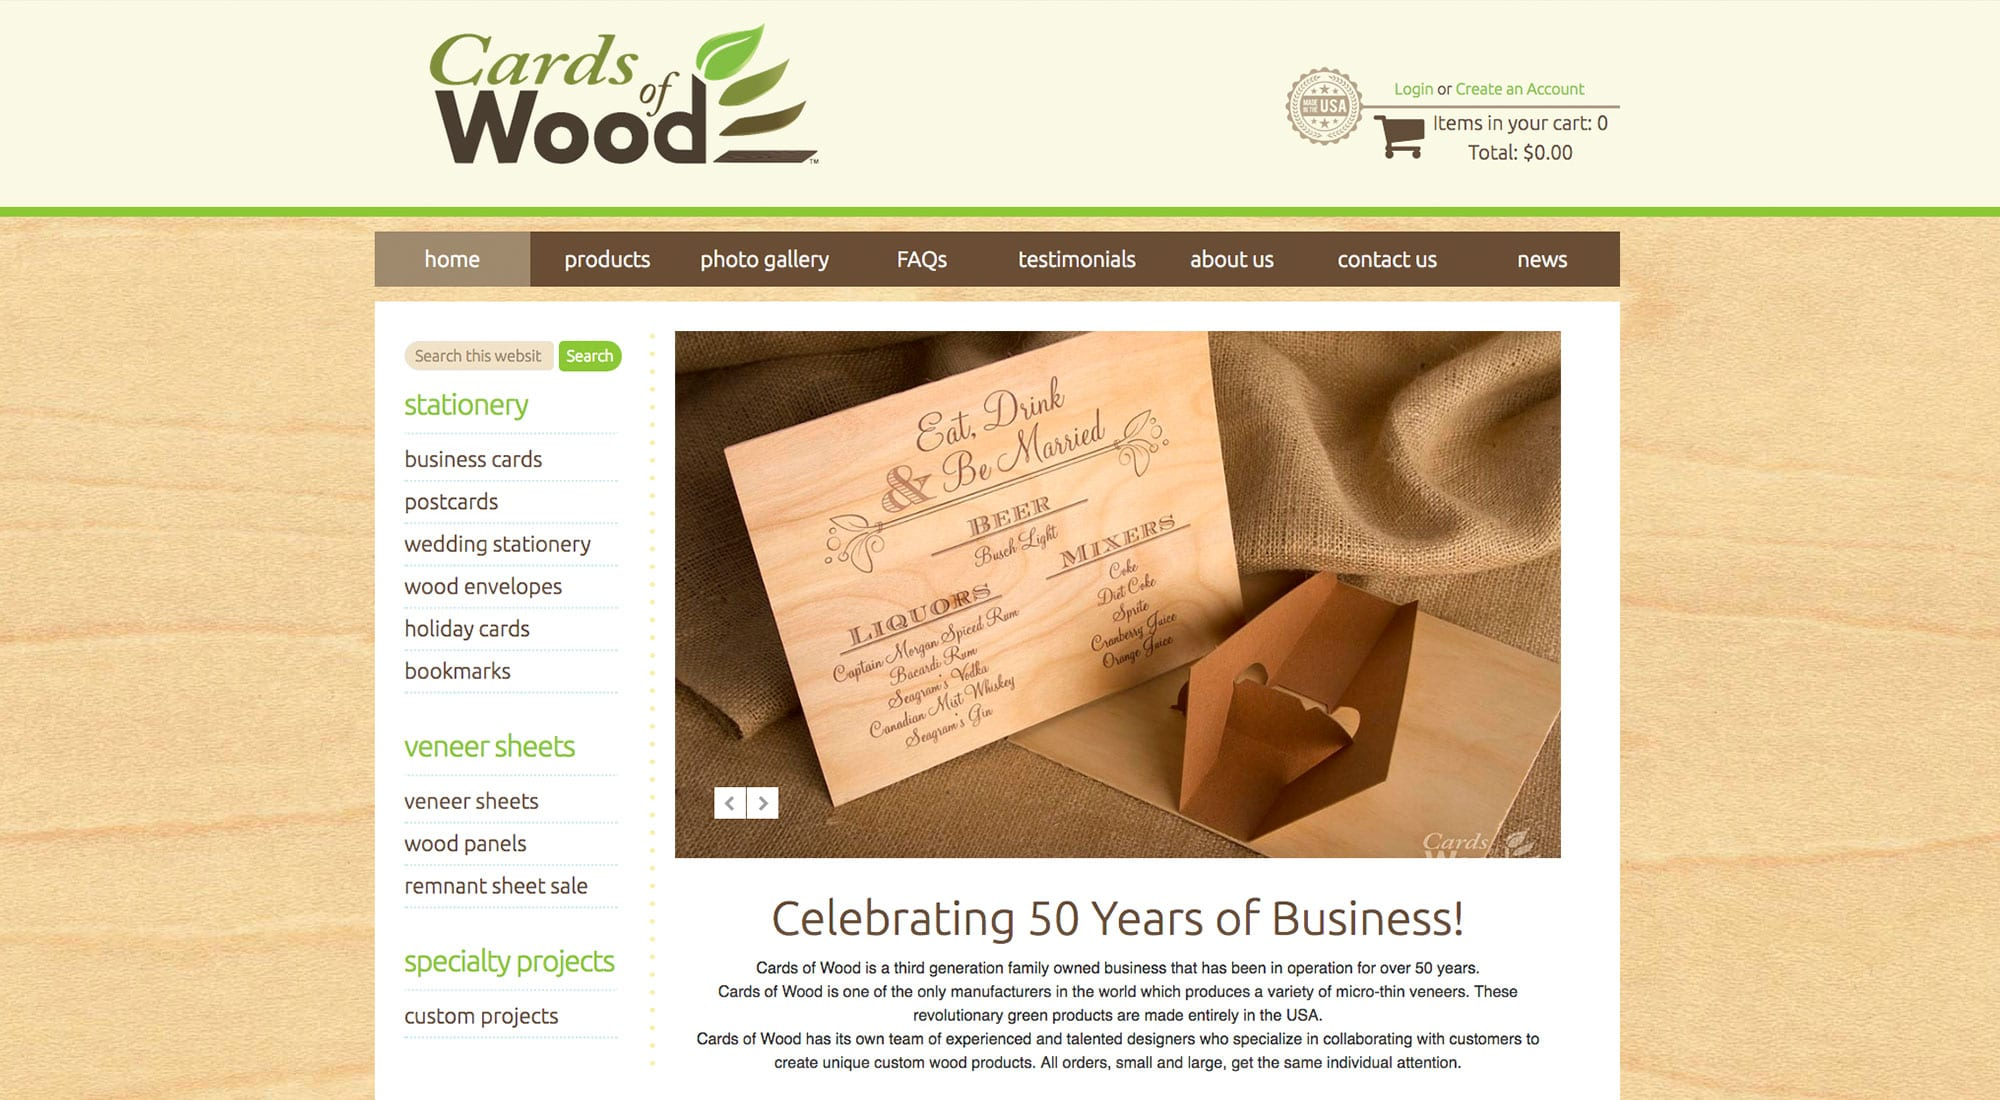 Cards of Wood Website design by Pixelvine